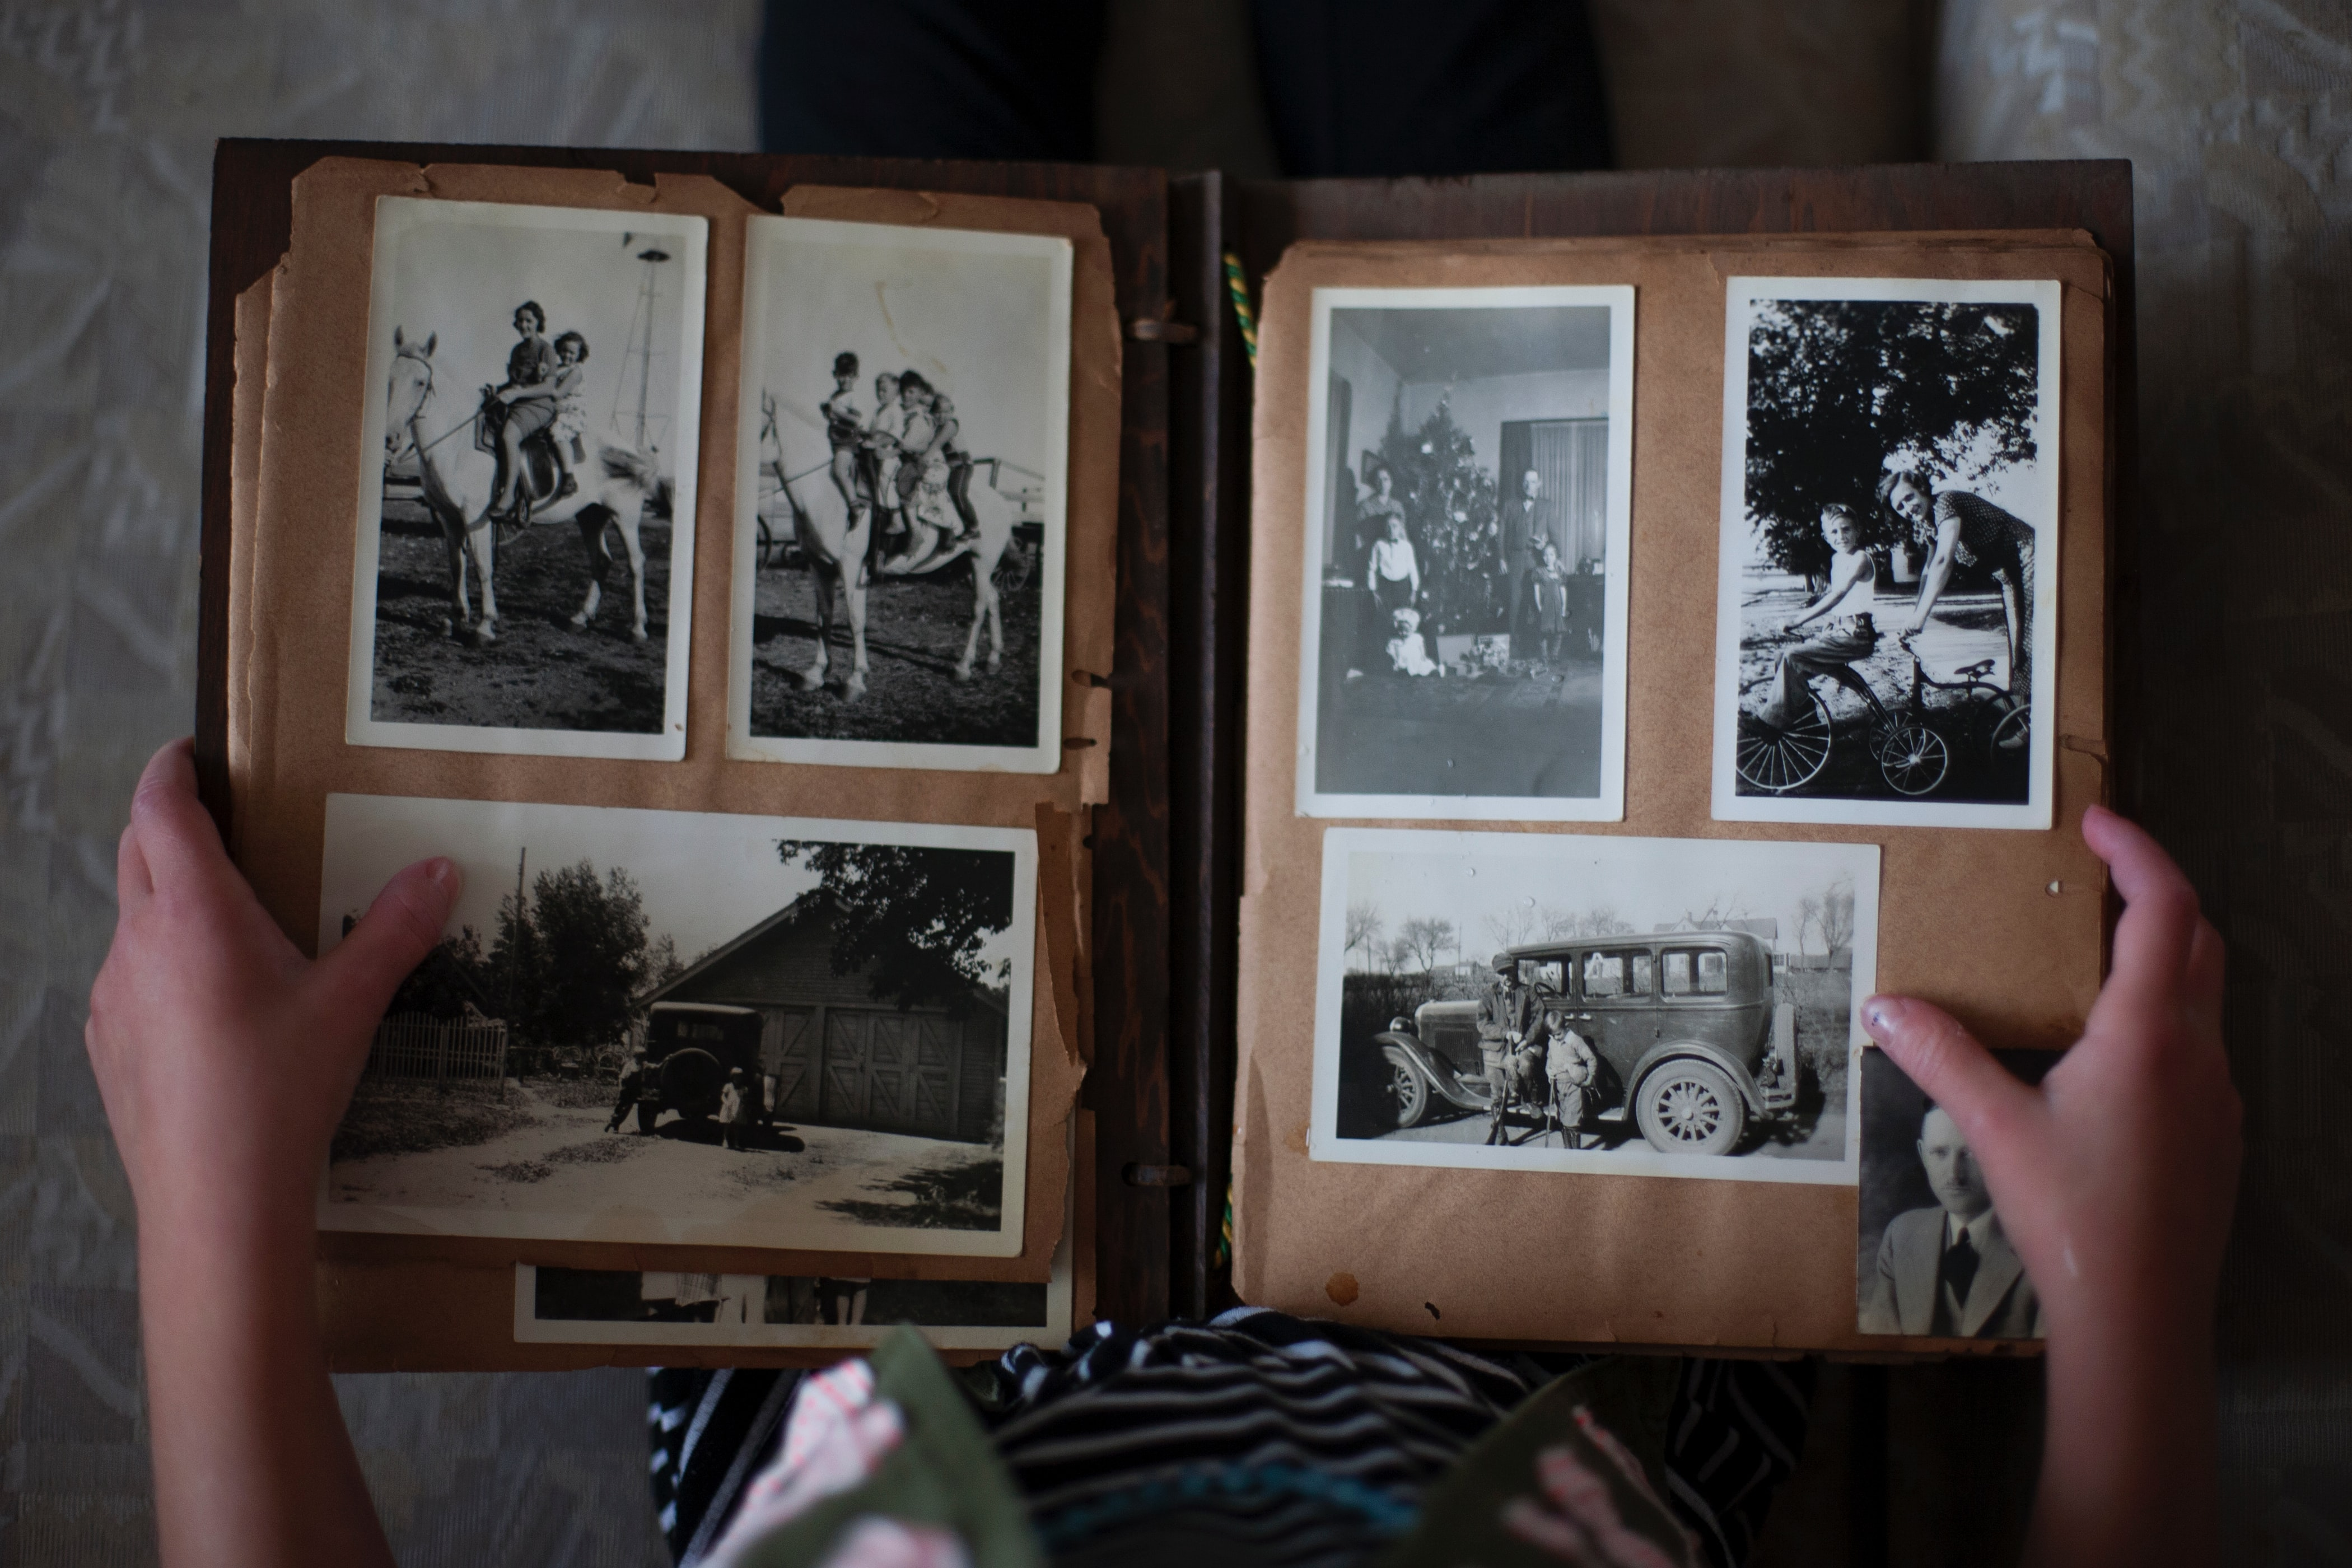 A photo book with old, personal photos